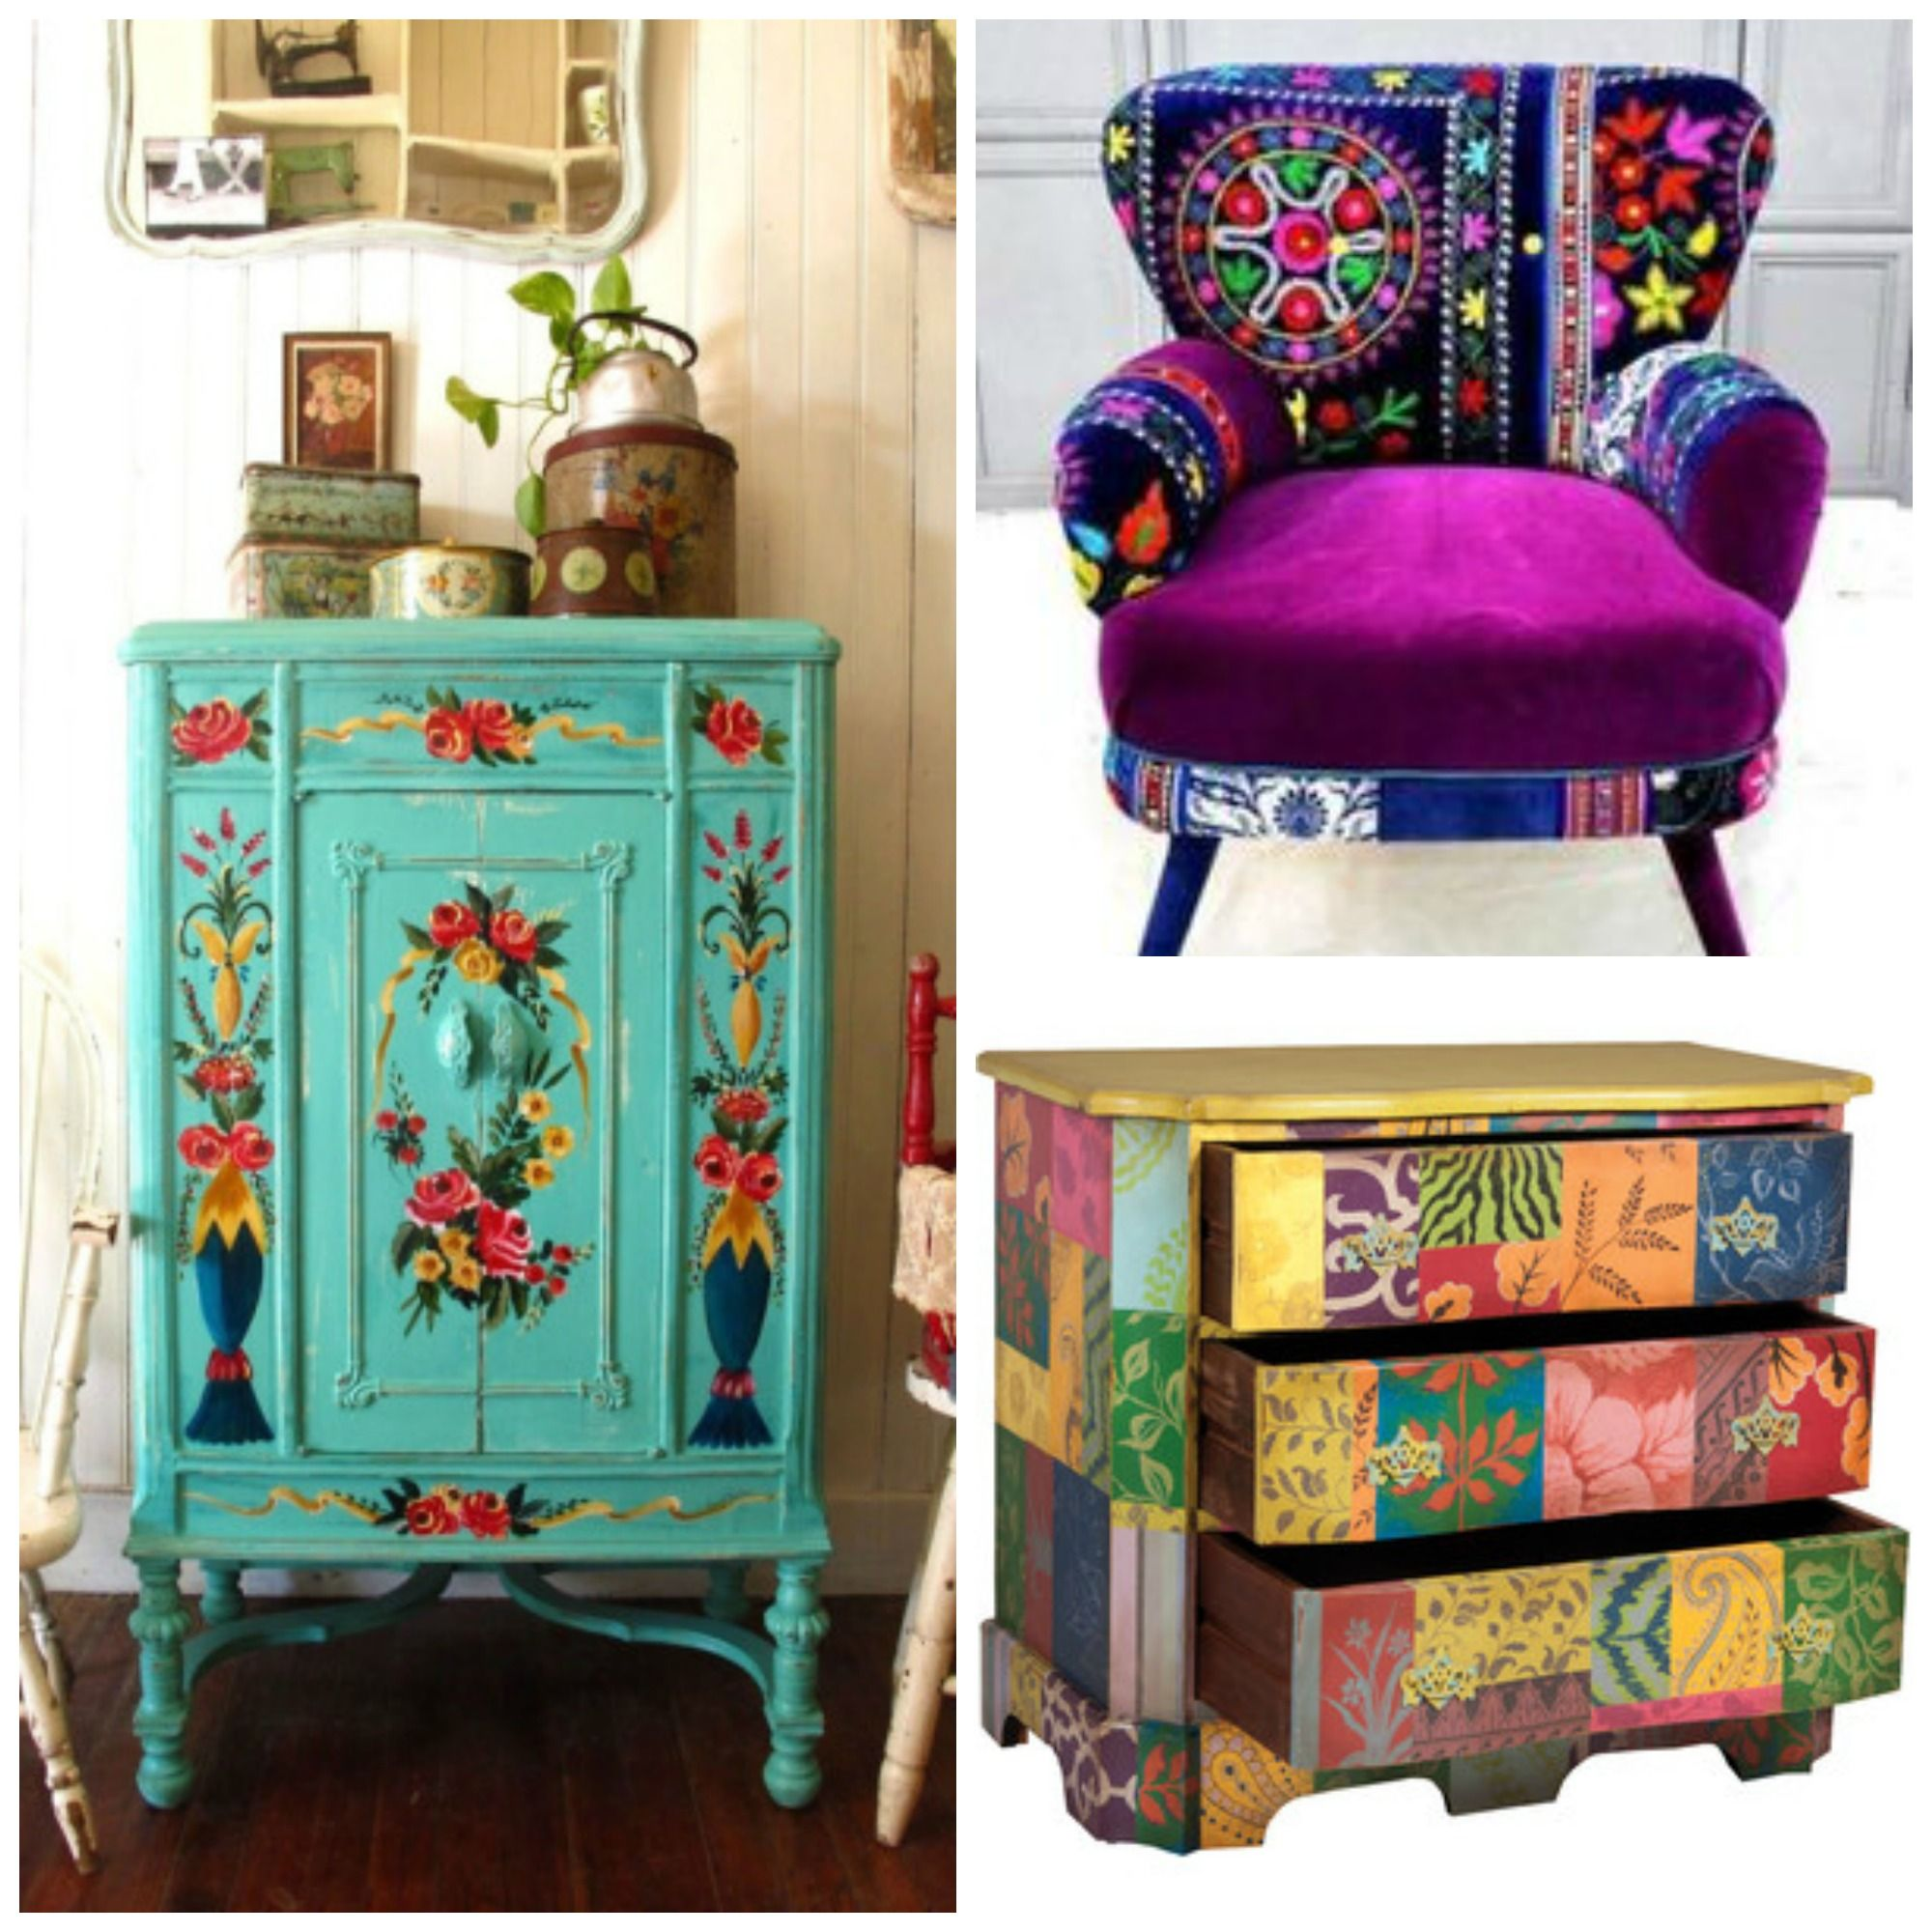 Hippie home decor bohemian interior bohemian decor style for Decorative bedroom furniture